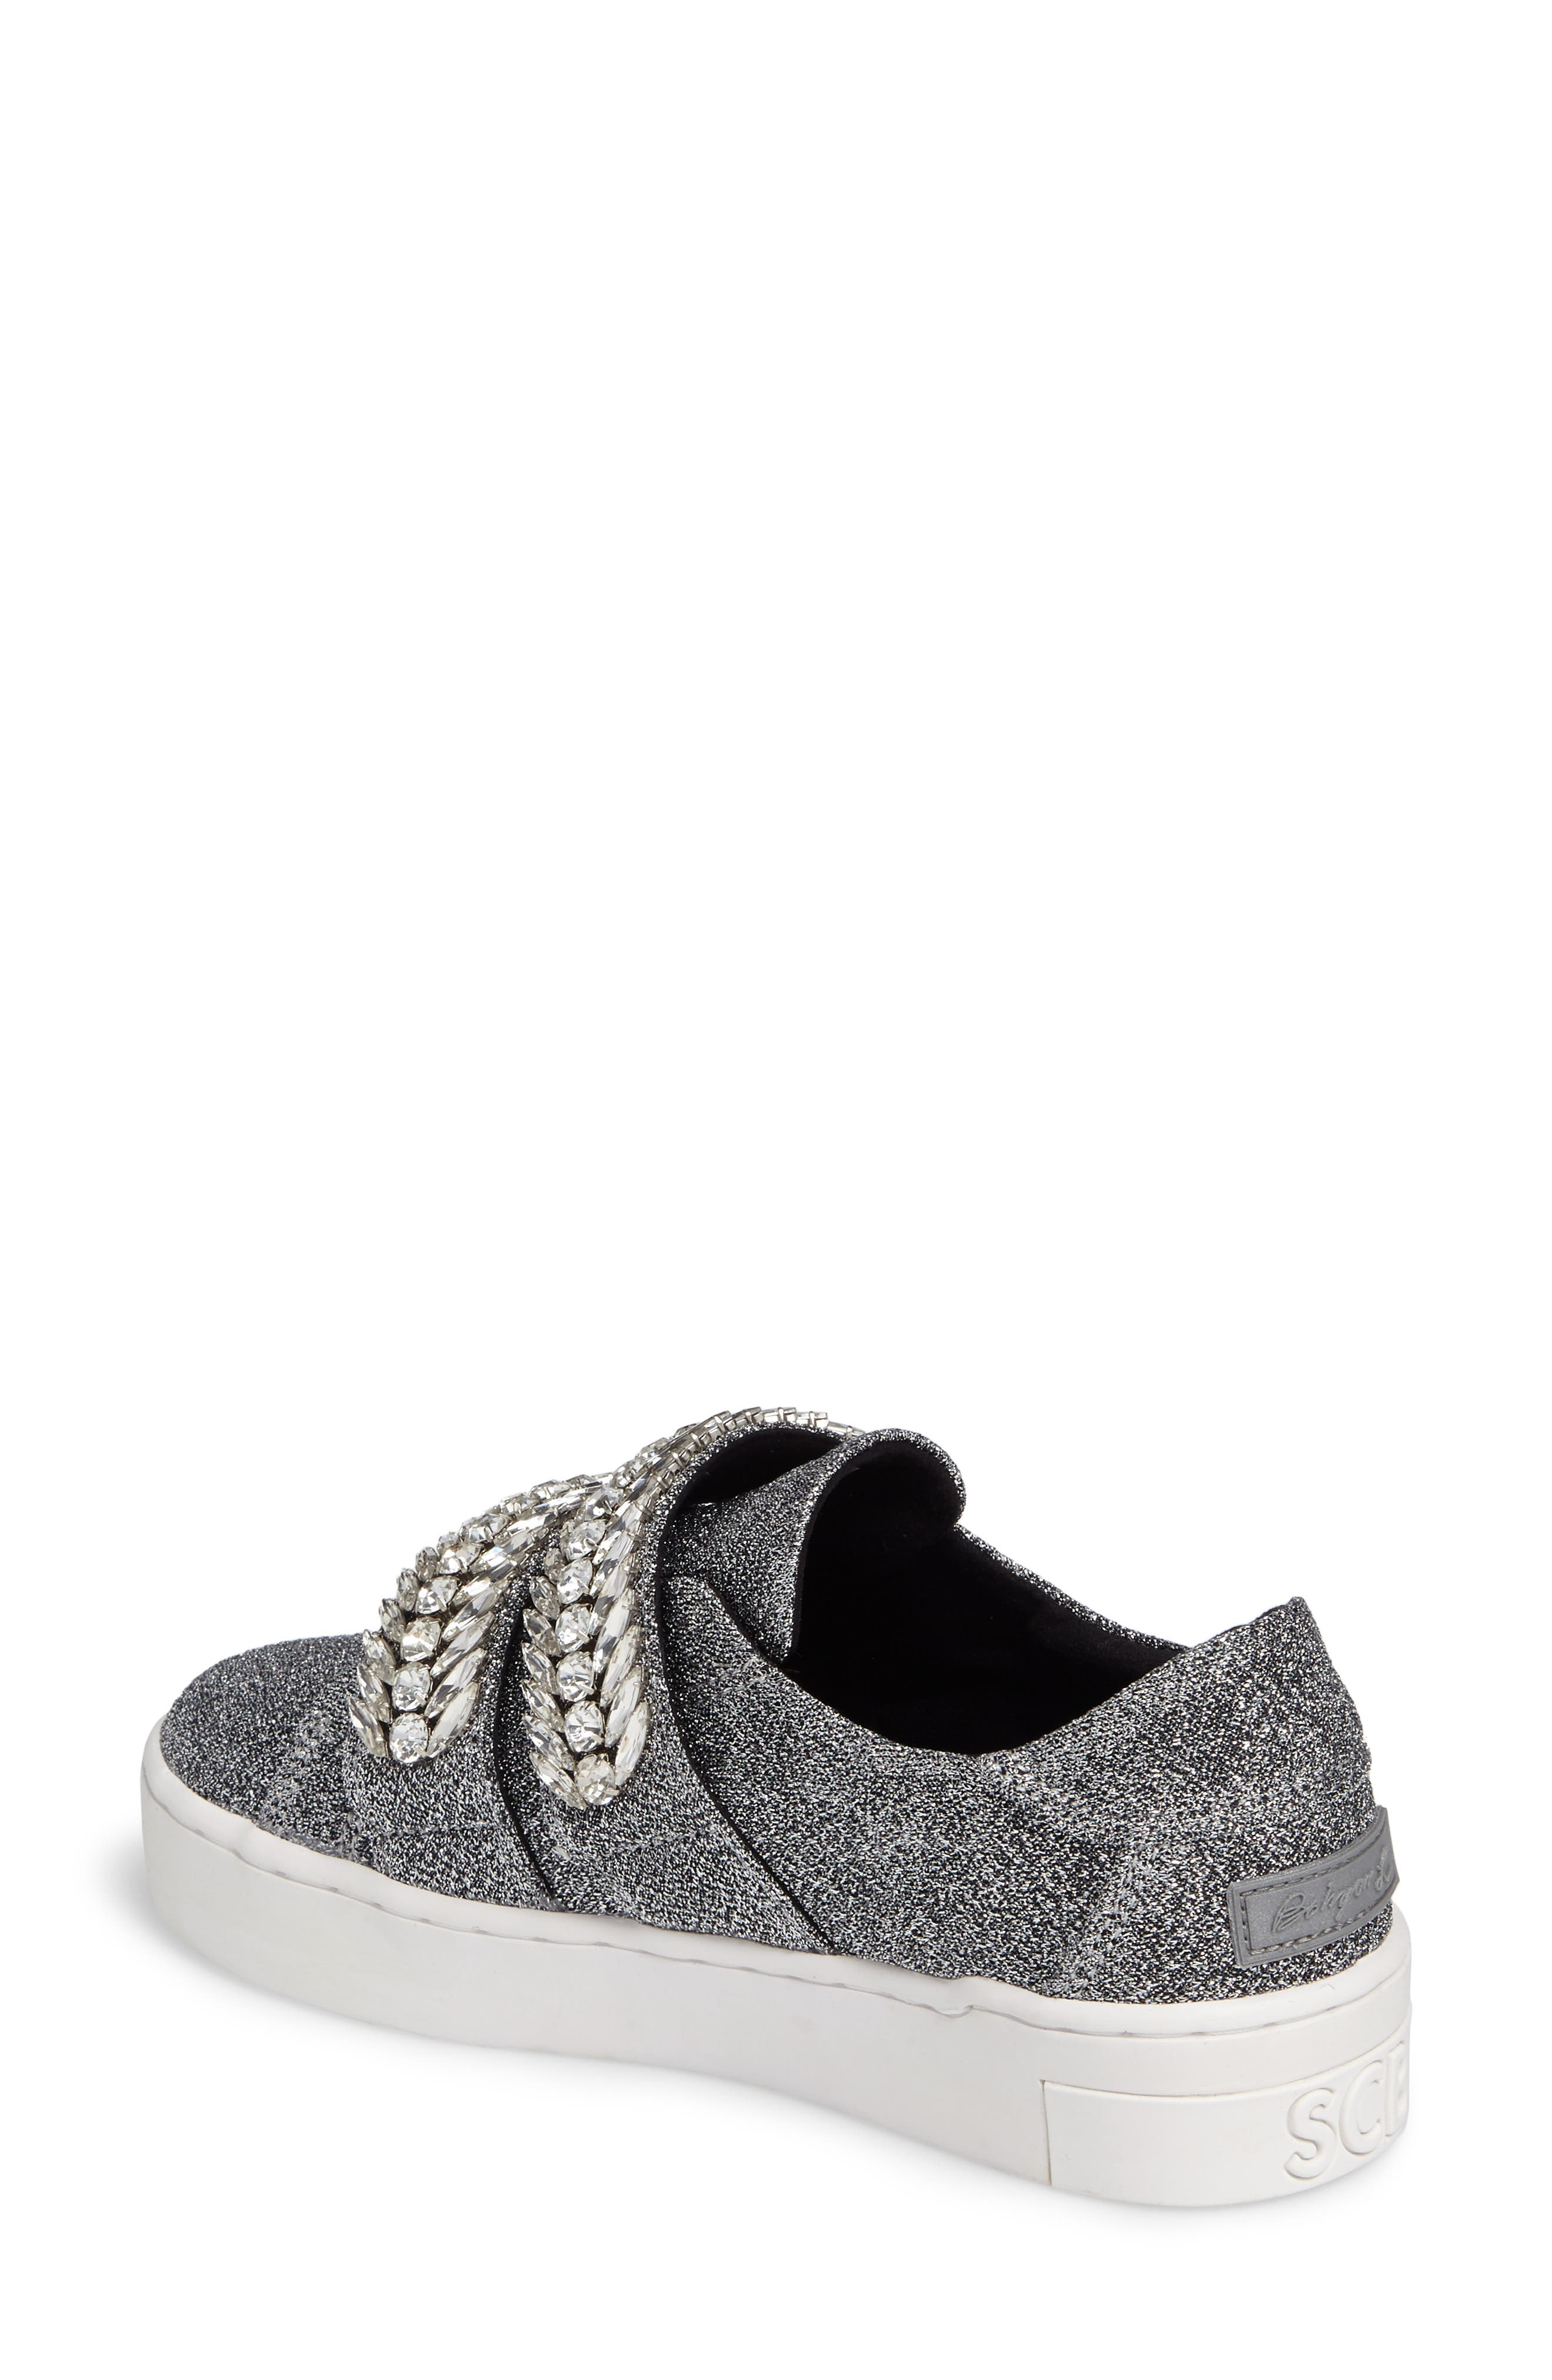 SUECOMMA BONNIE,                             Crystal Embellished Sneaker,                             Alternate thumbnail 2, color,                             040